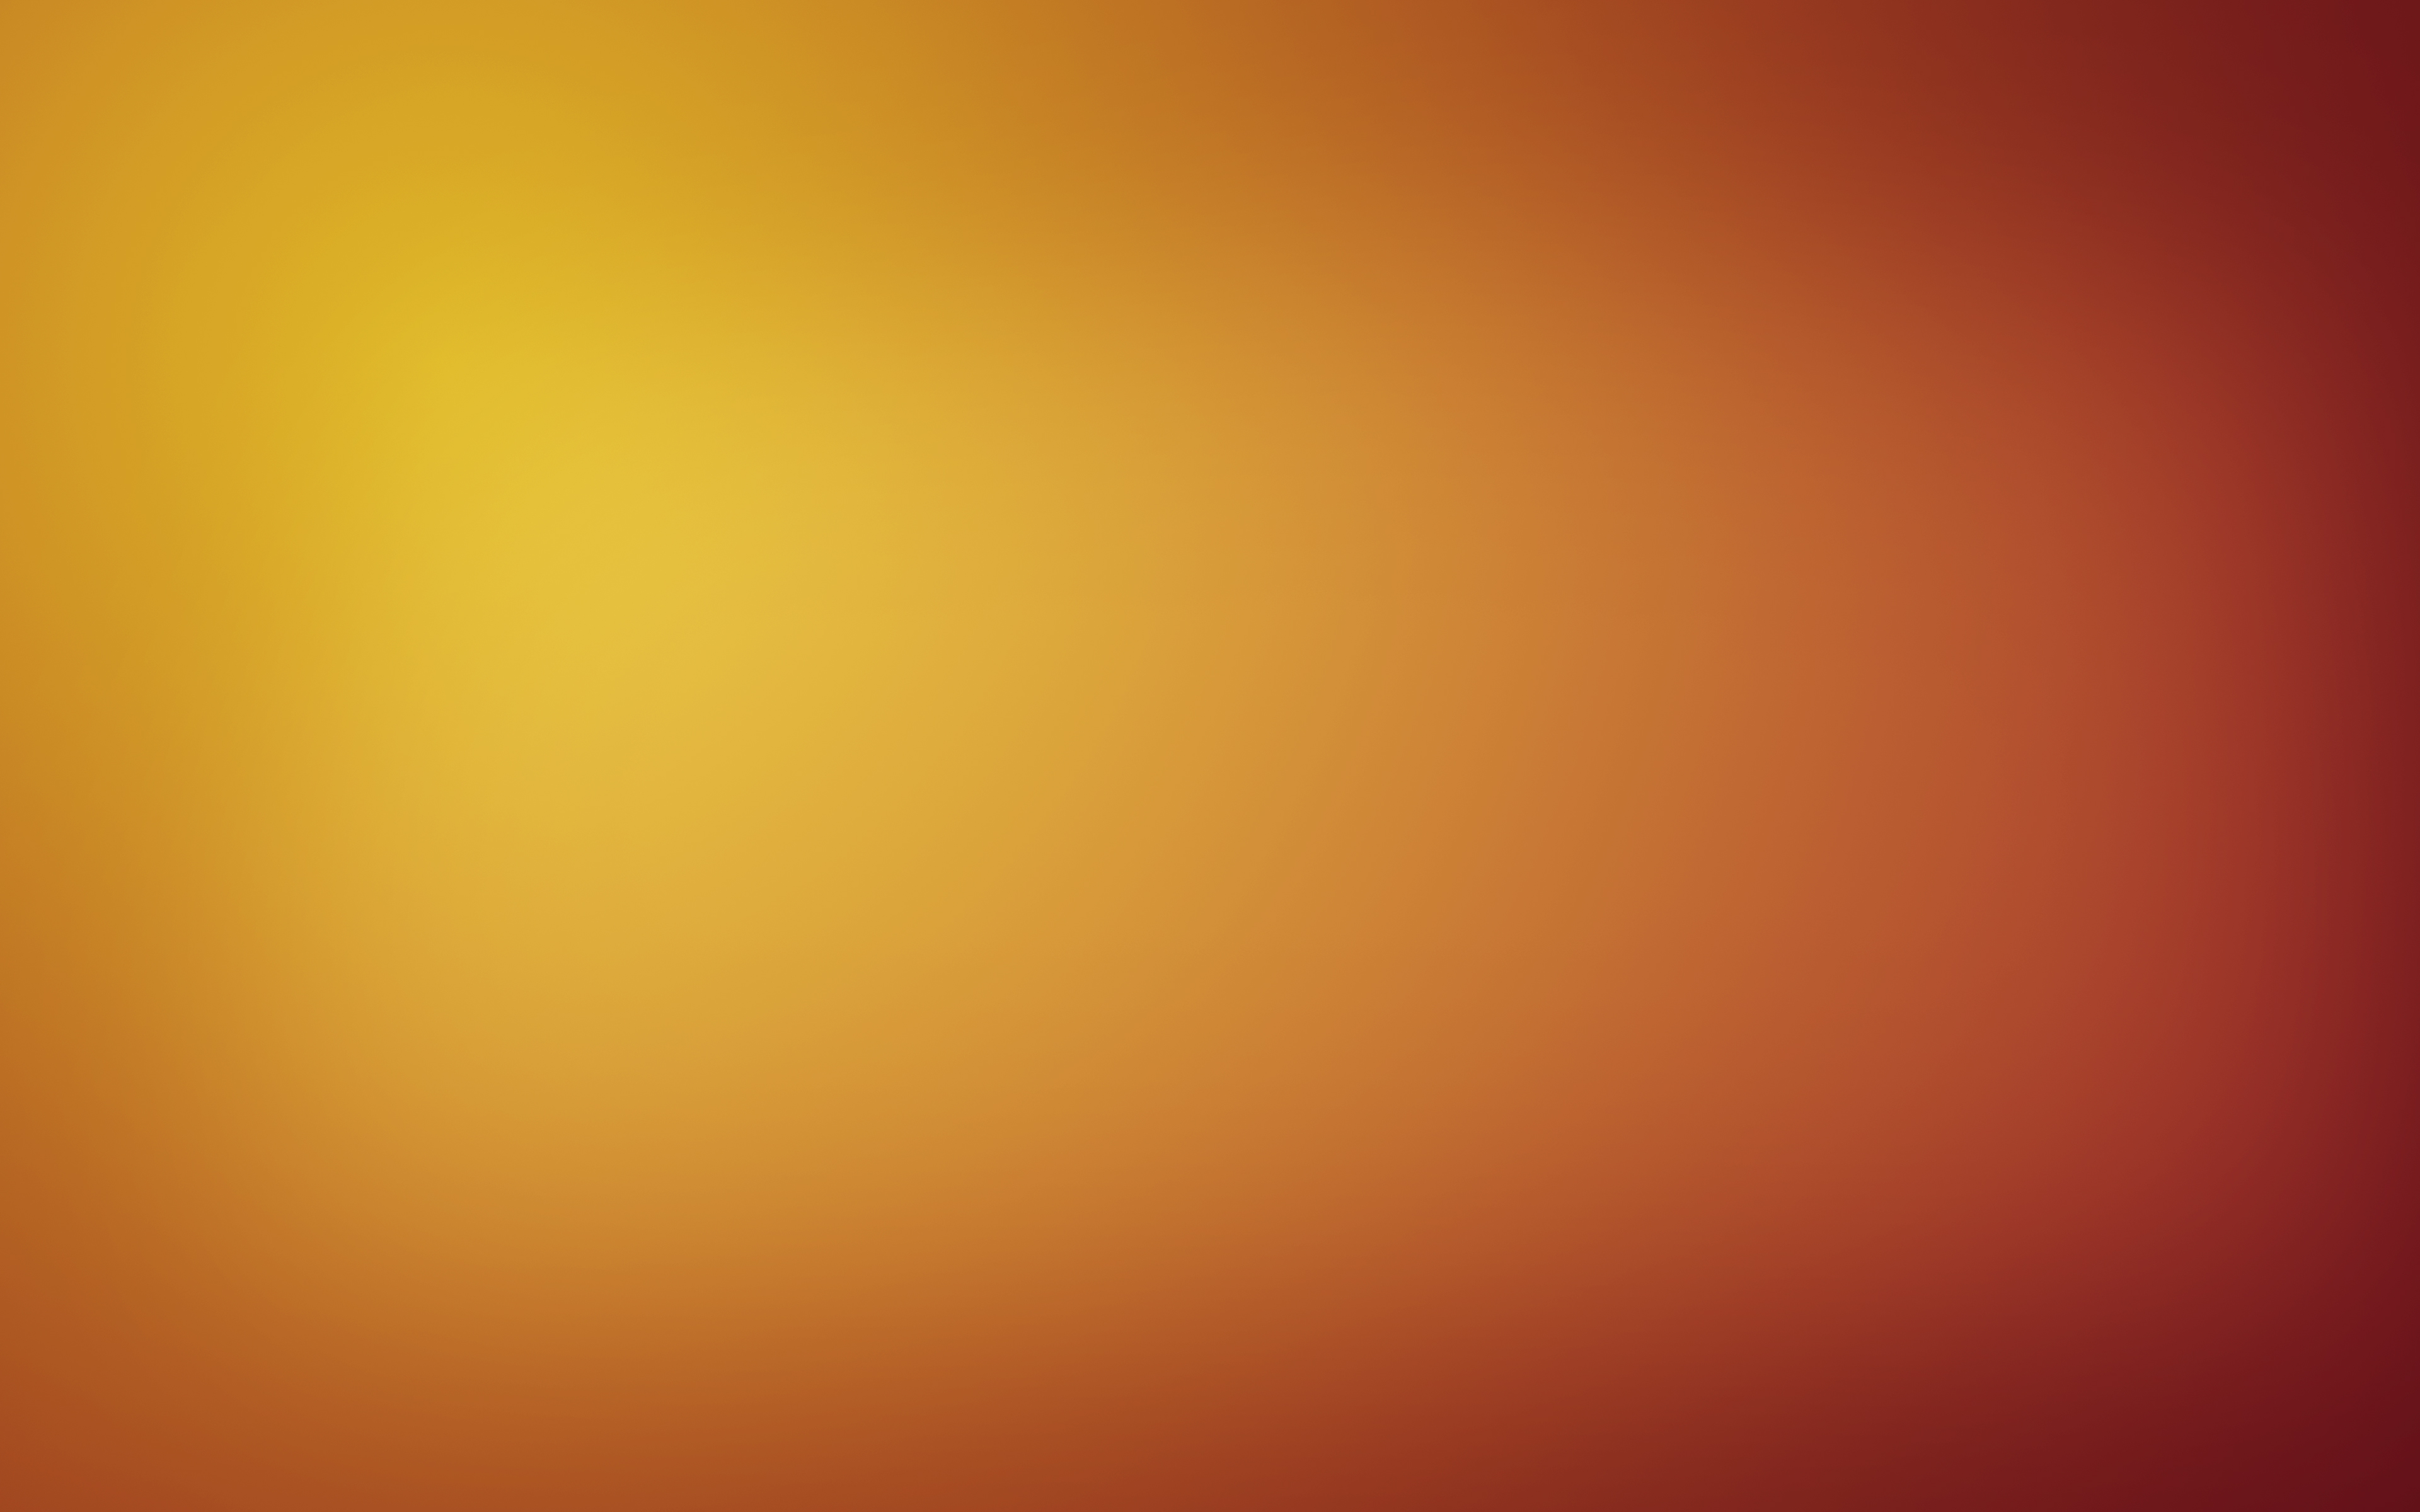 Radient by electroqute-designs, blur, fuzzy, color, orange, wallpapers